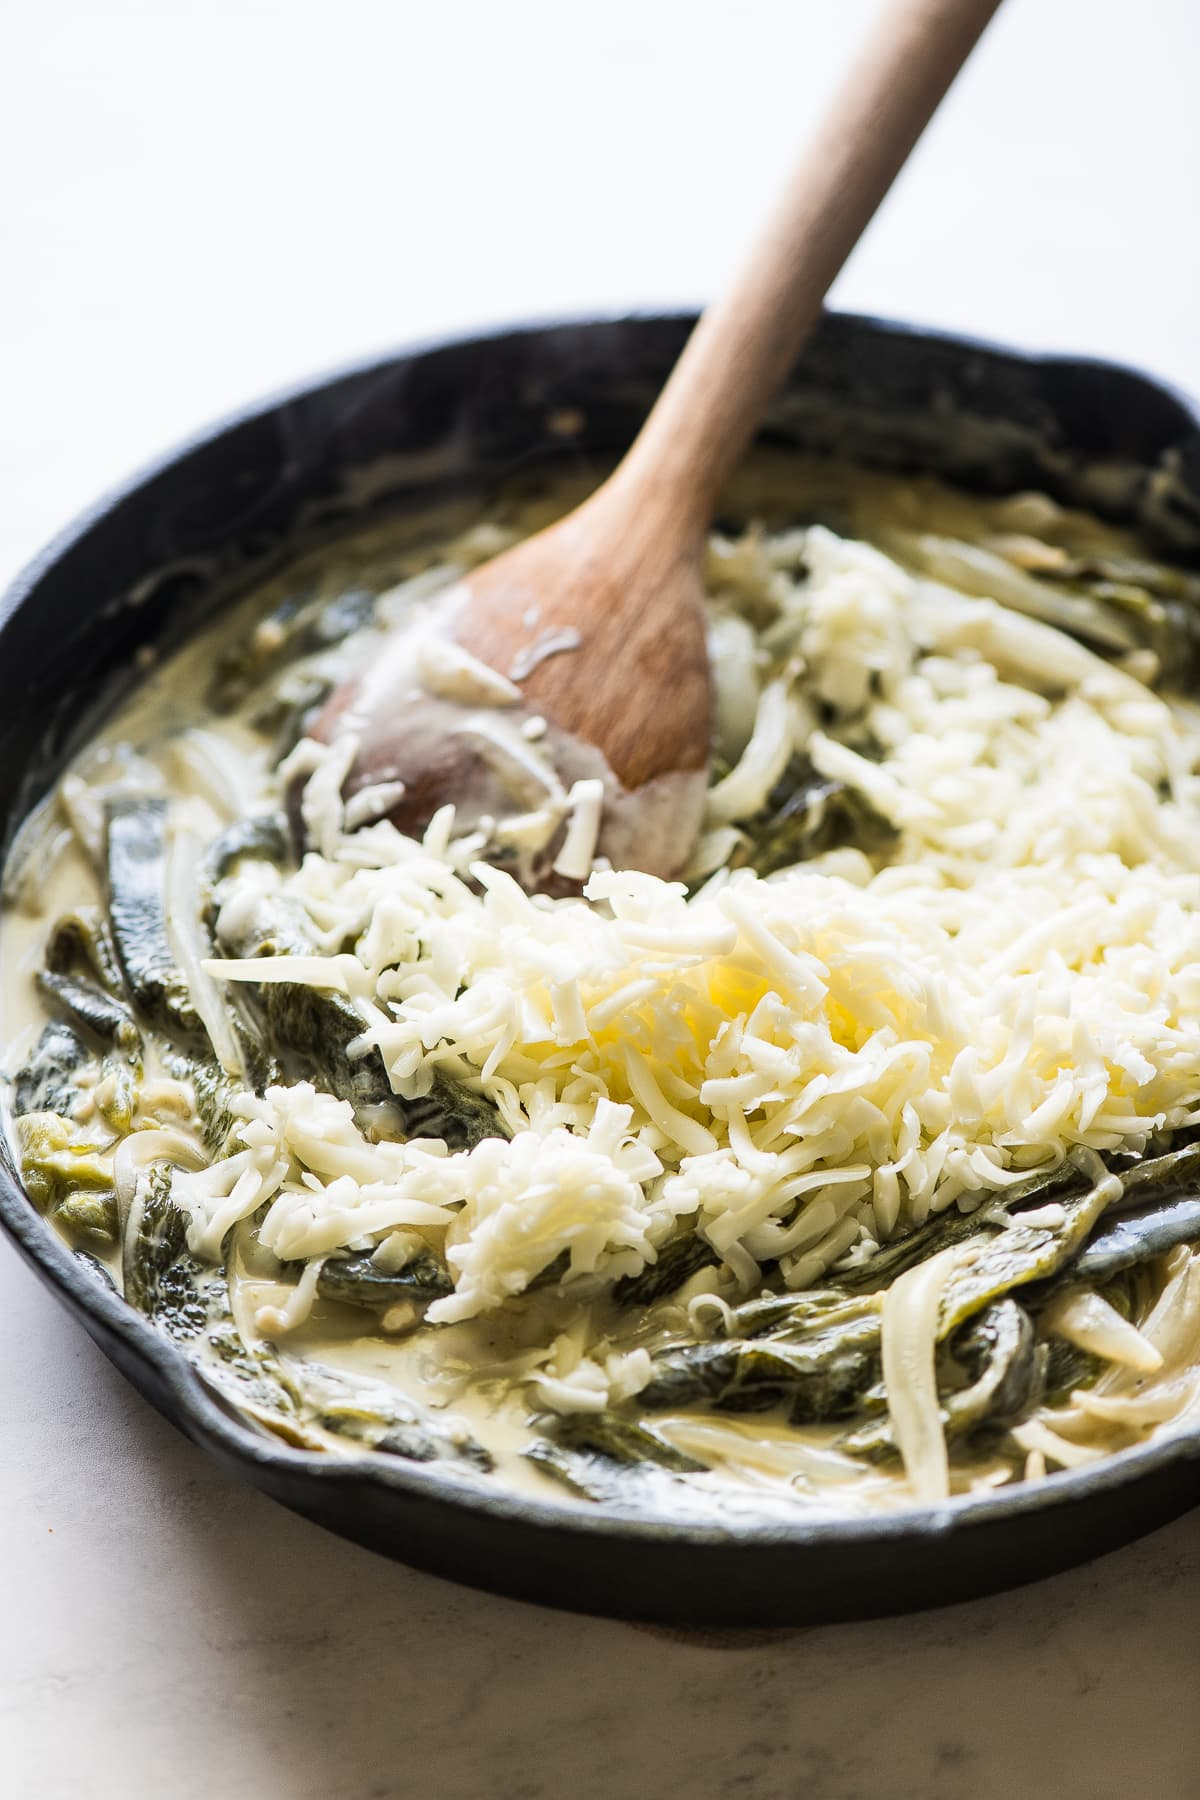 Shredded Oaxaca cheese being stirred into rajas con crema skillet.